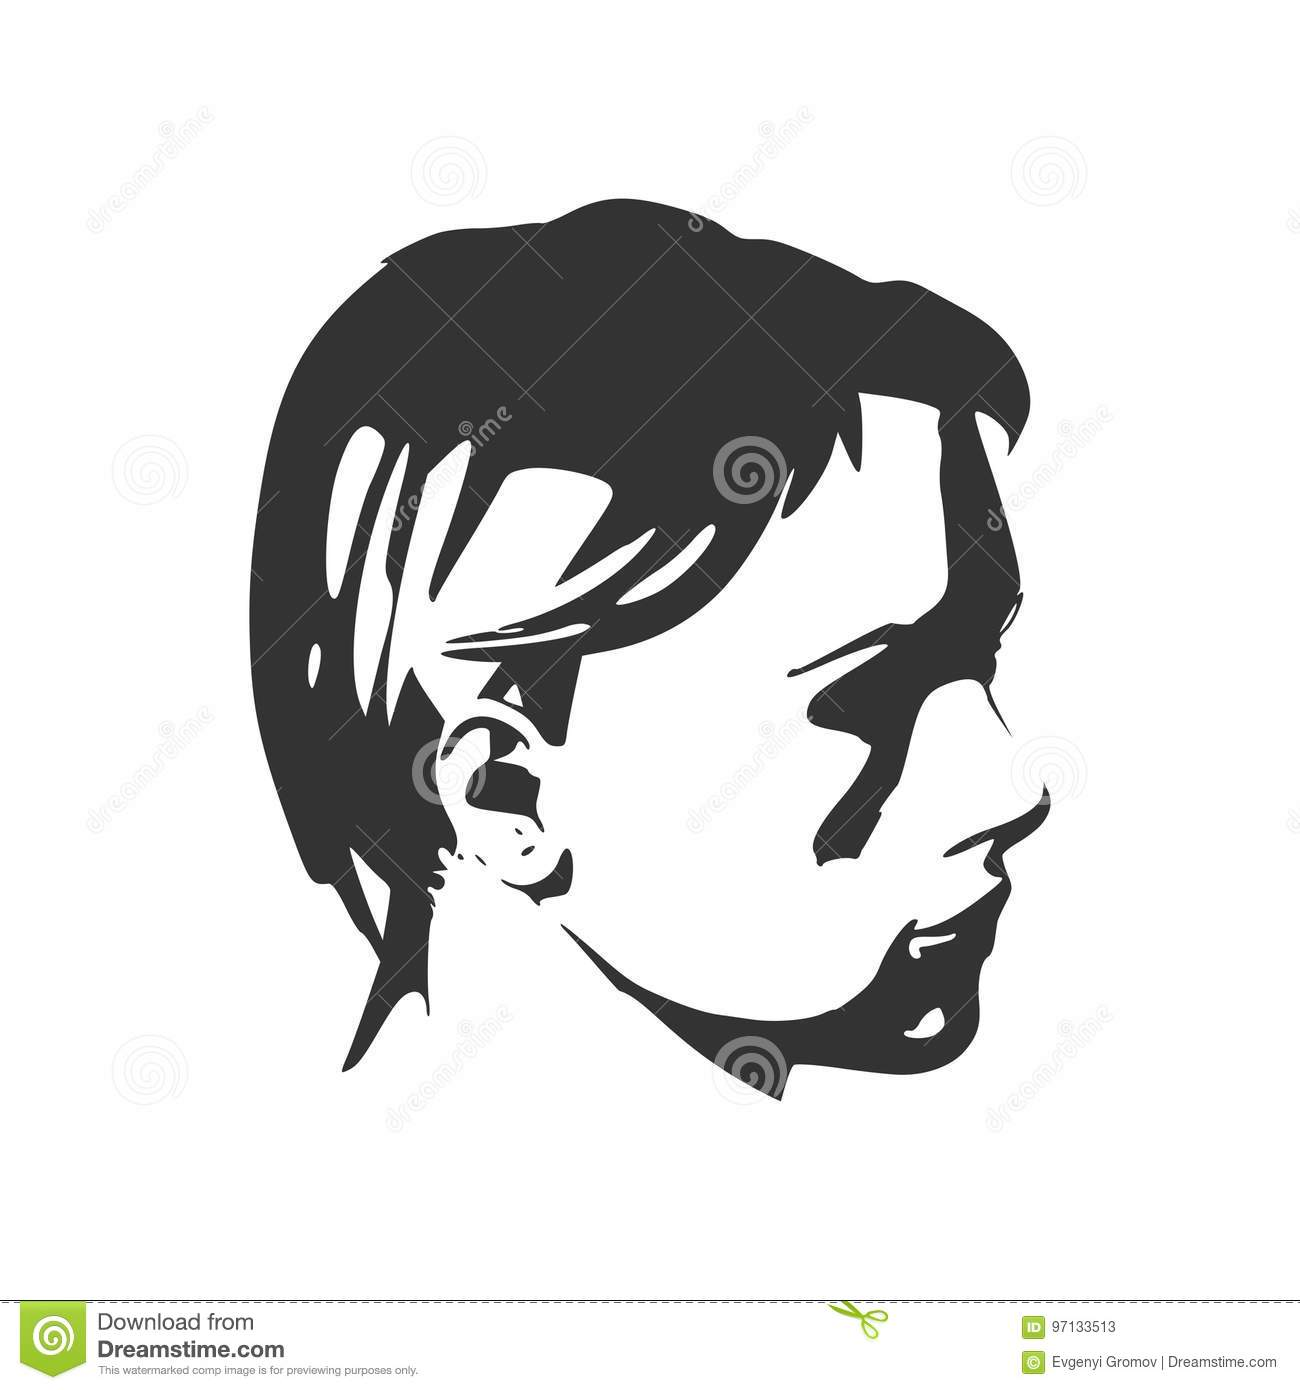 Silhouette of a female head face side view stock vector